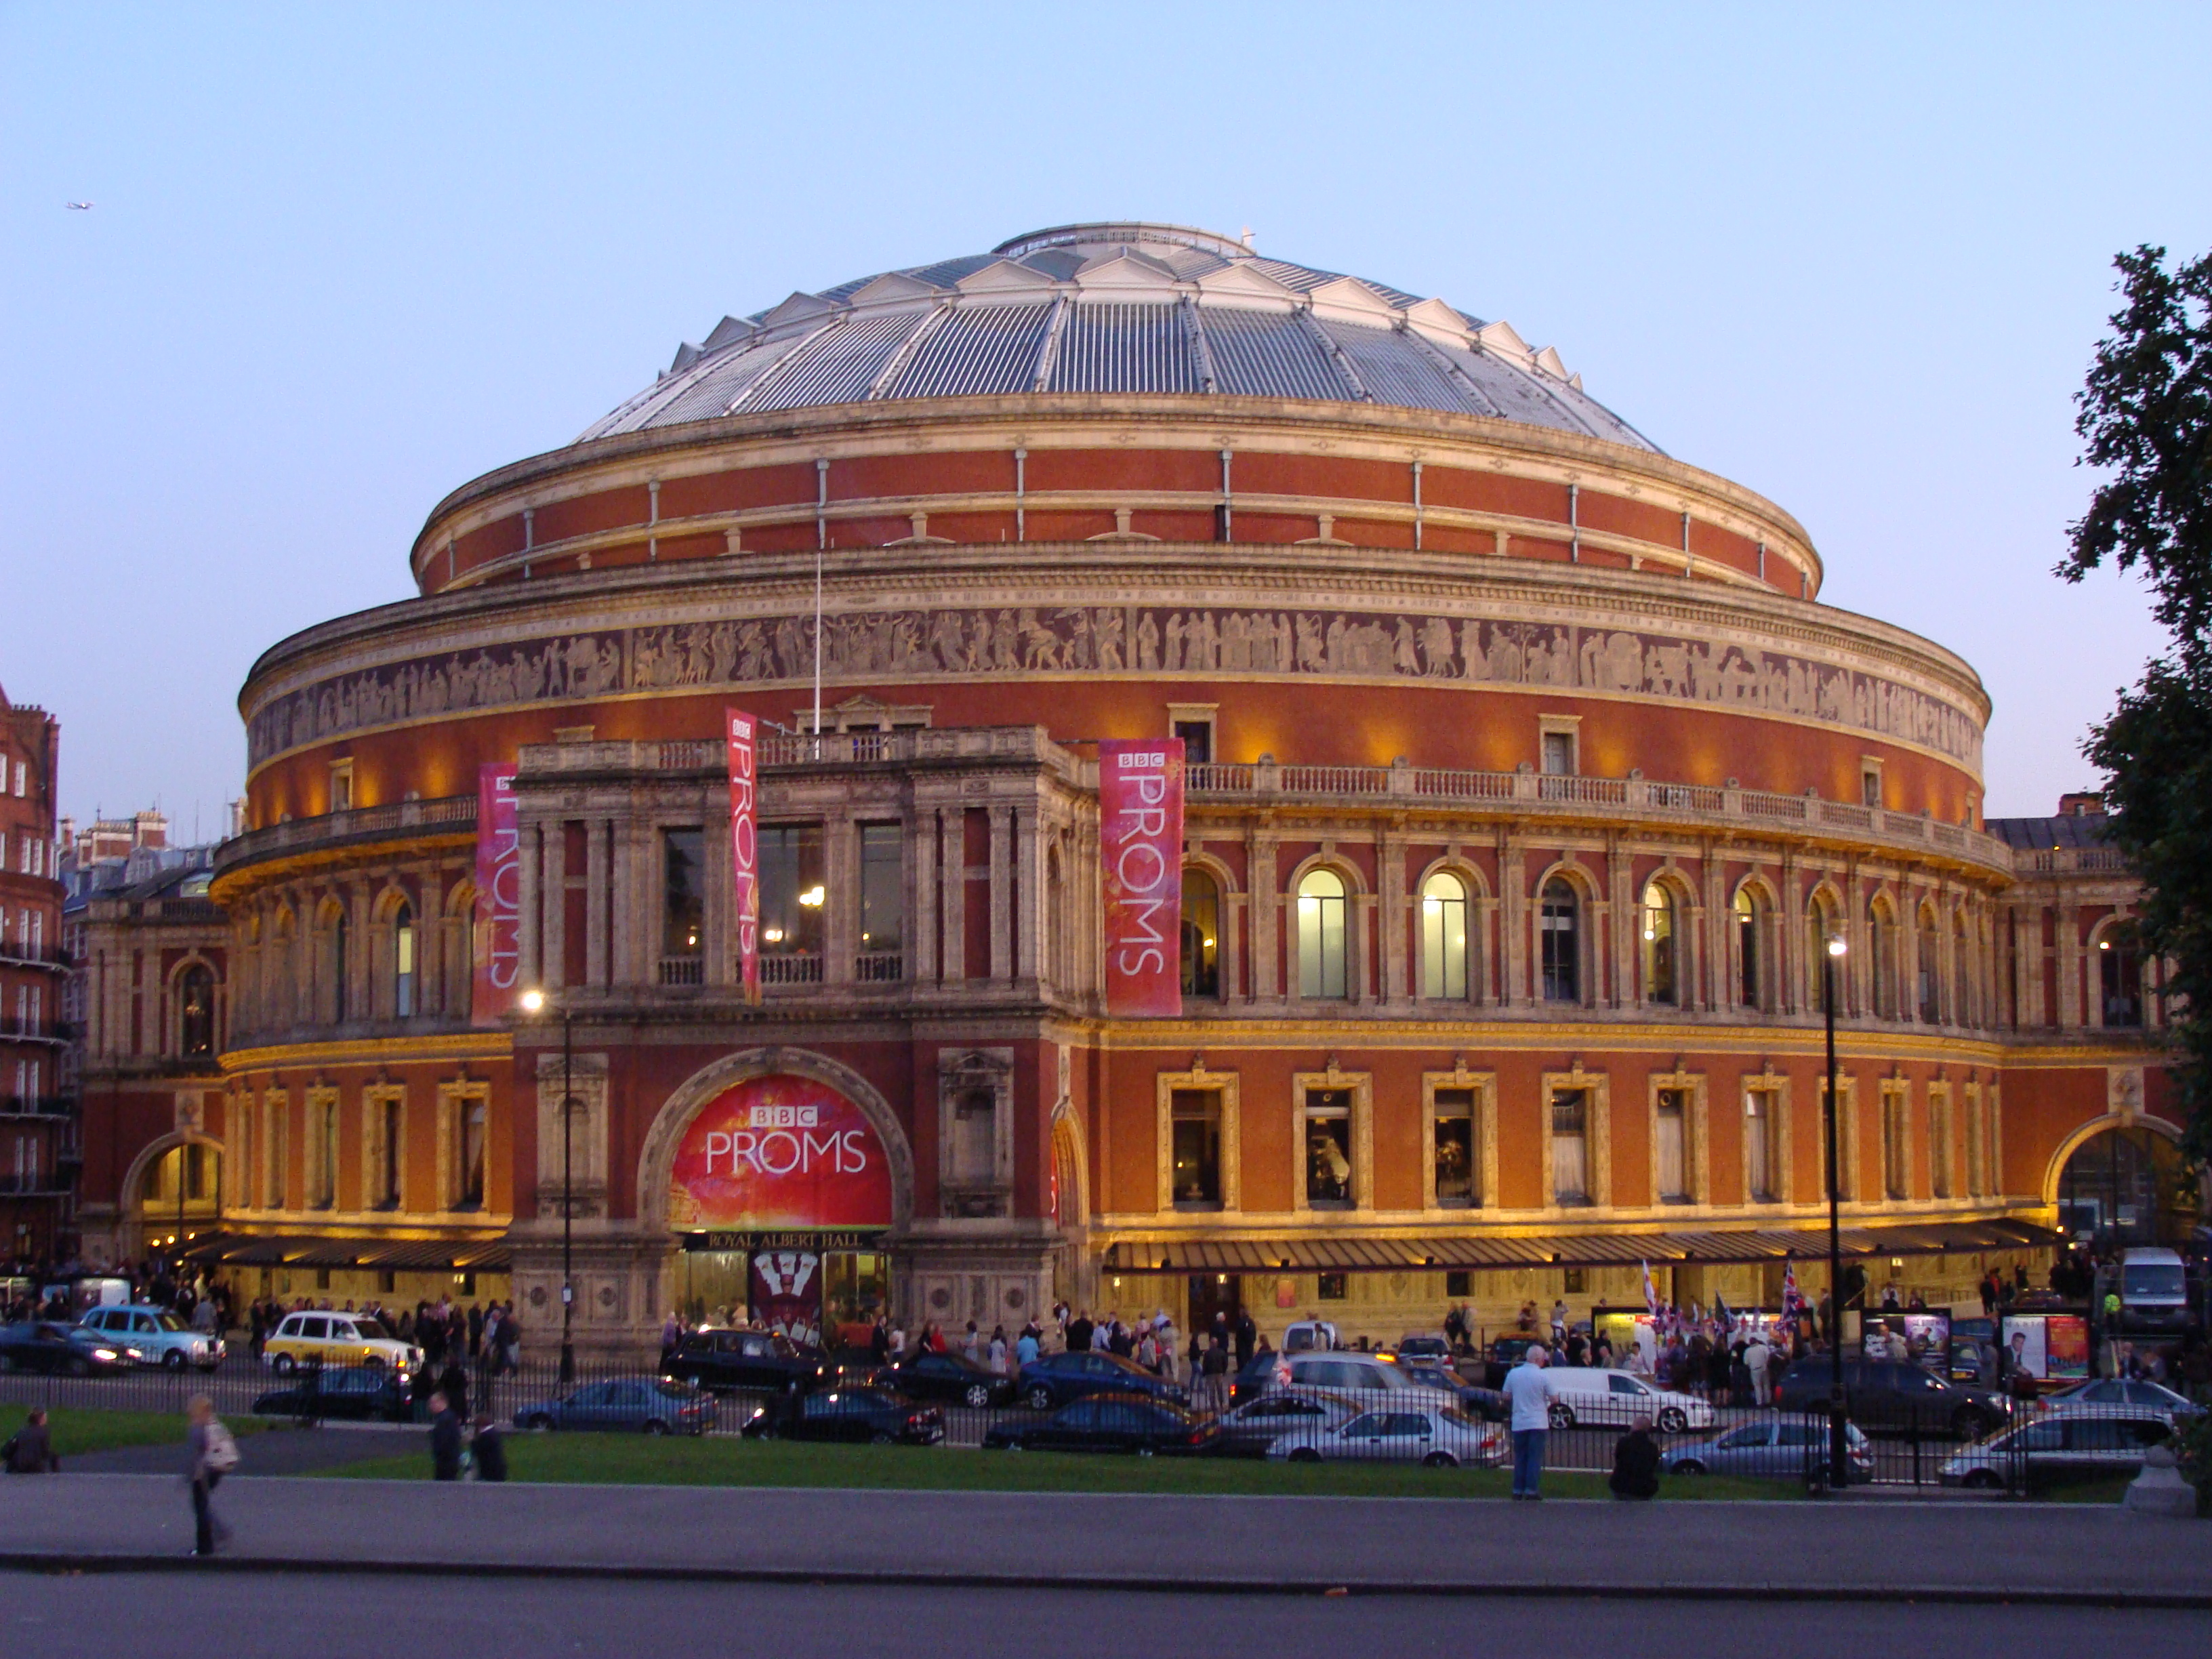 Royal_Albert_Hall.001_-_London.JPG